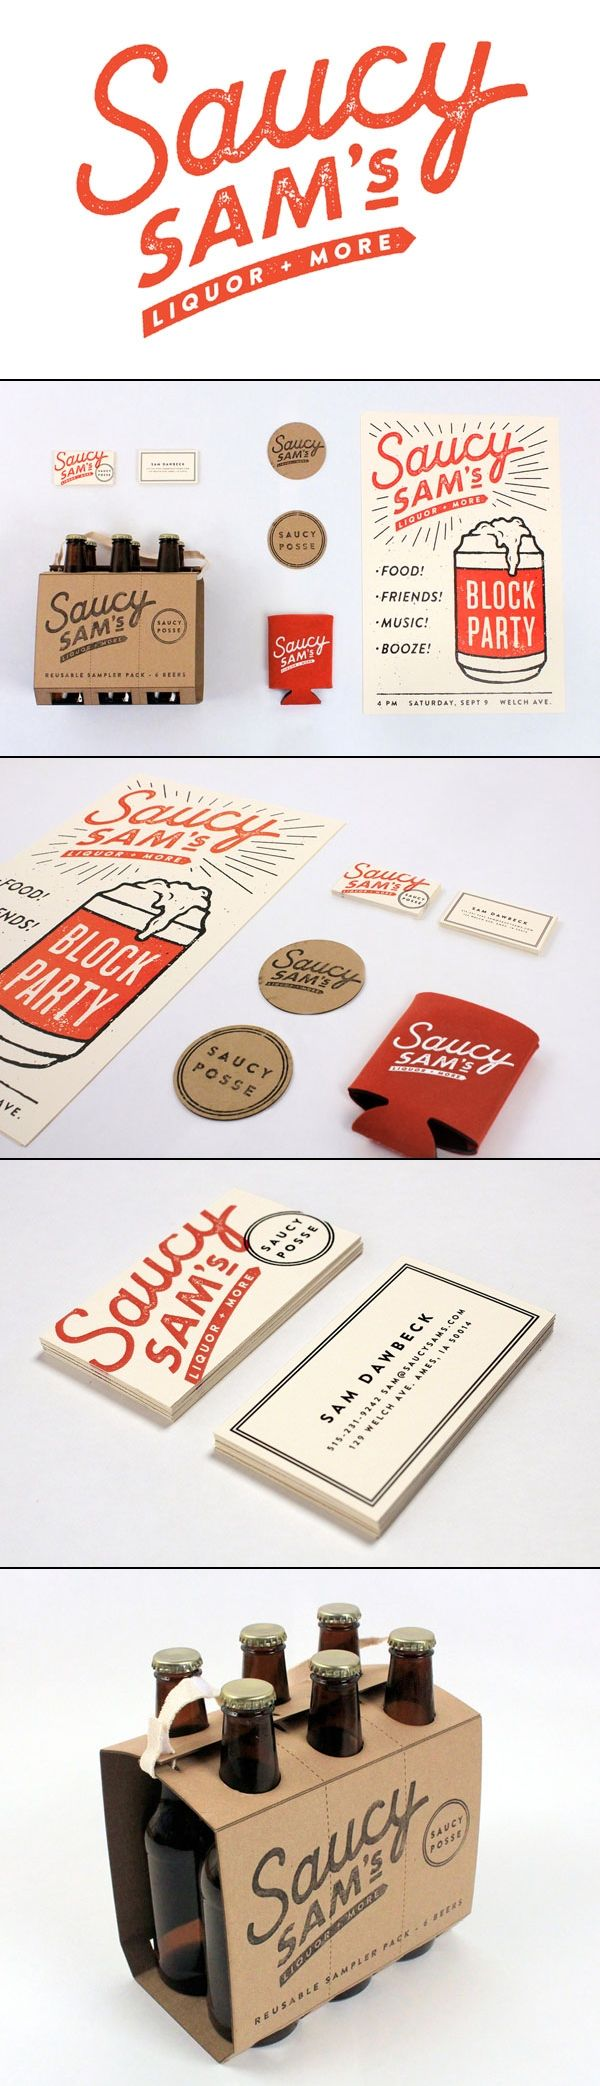 Saucy Sam's – Branding and Packaging by Alex Register Design